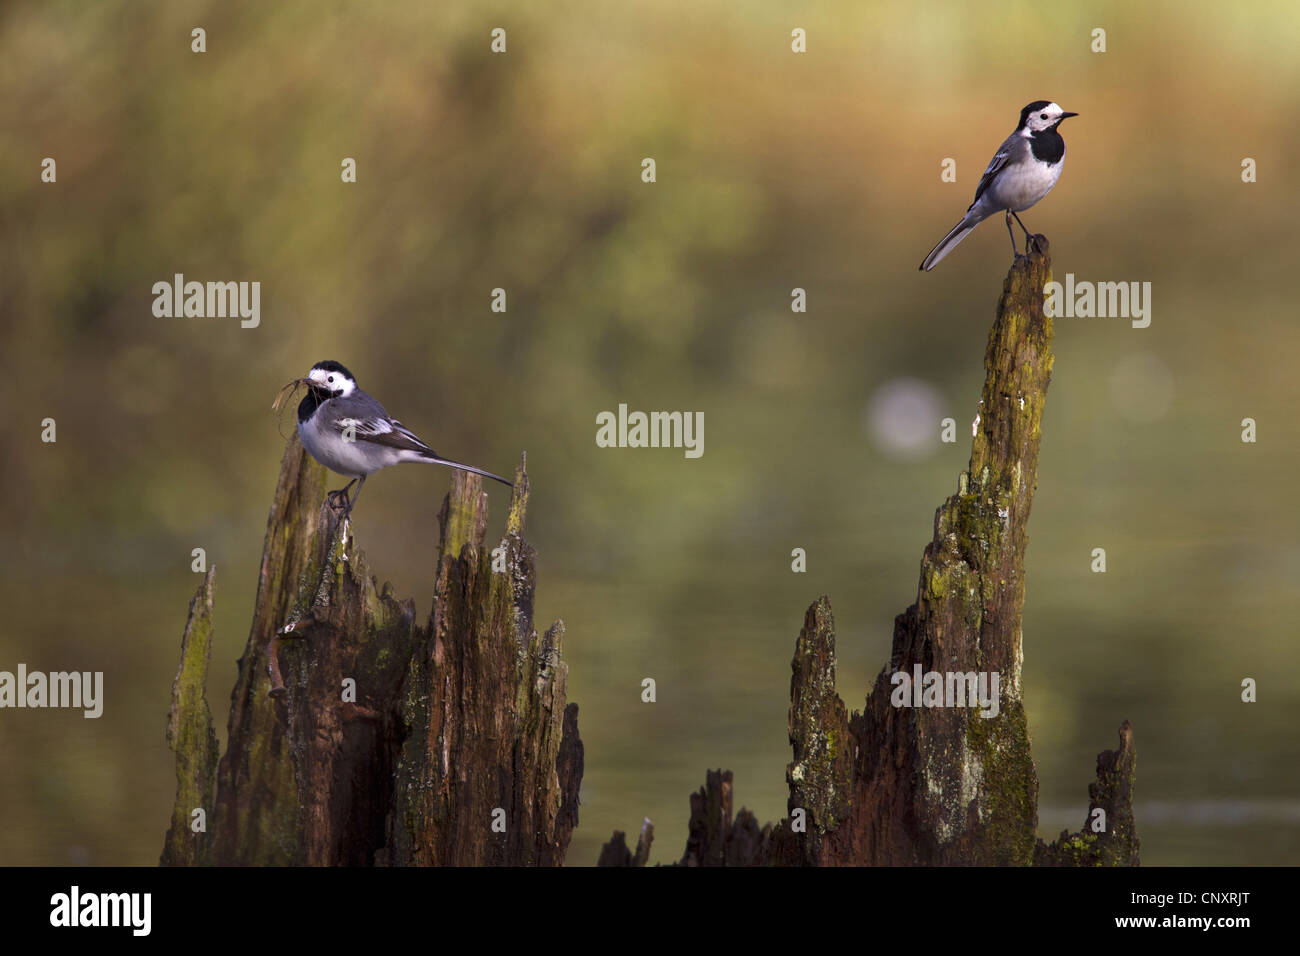 pied wagtail (Motacilla alba), two wagtails sitting on a tree snag, one with nesting material in its beak, Germany, - Stock Image